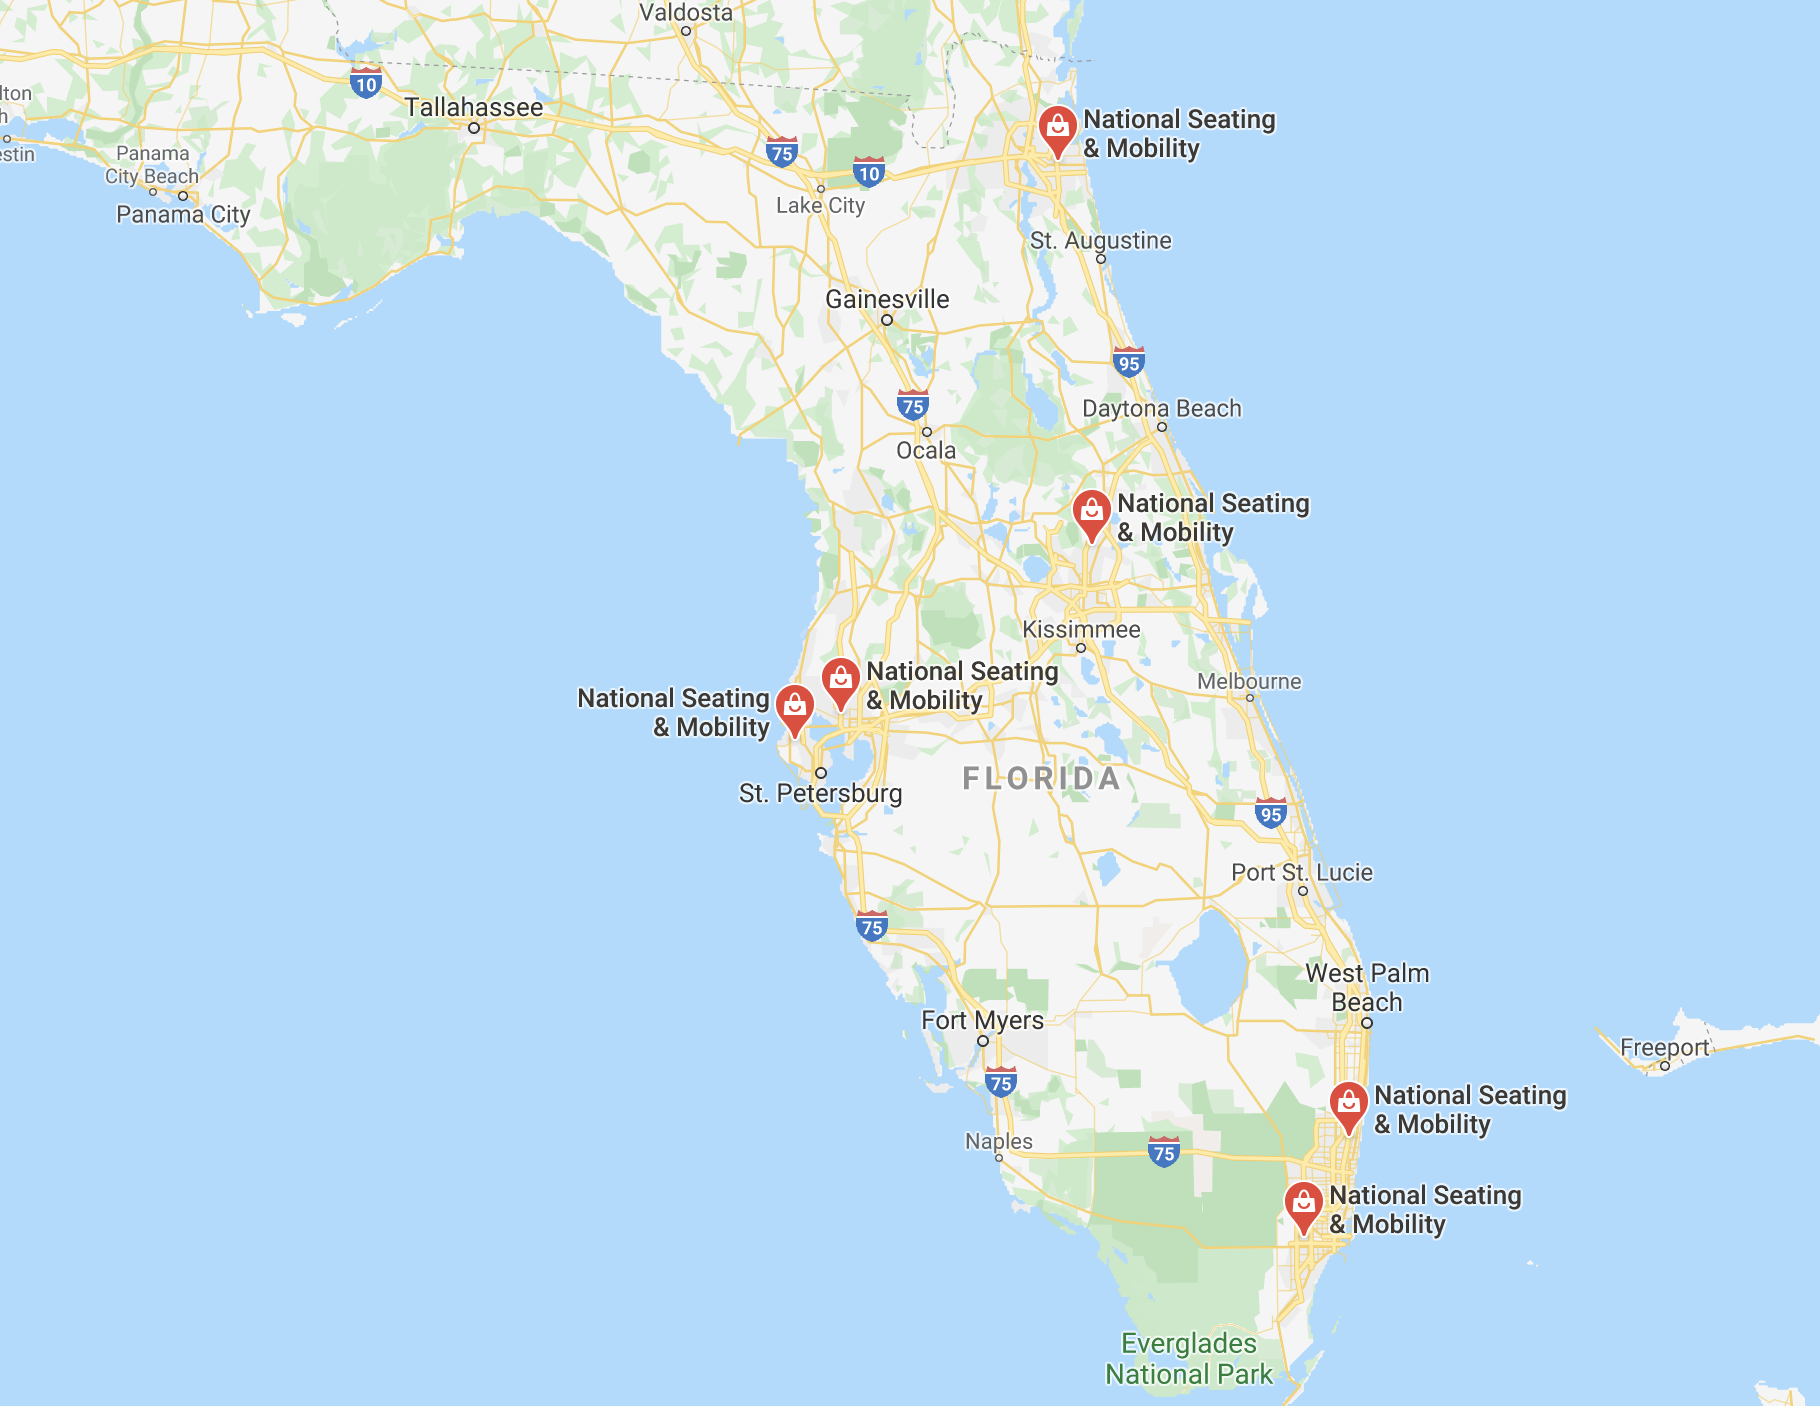 Map of NSM locations in Florida